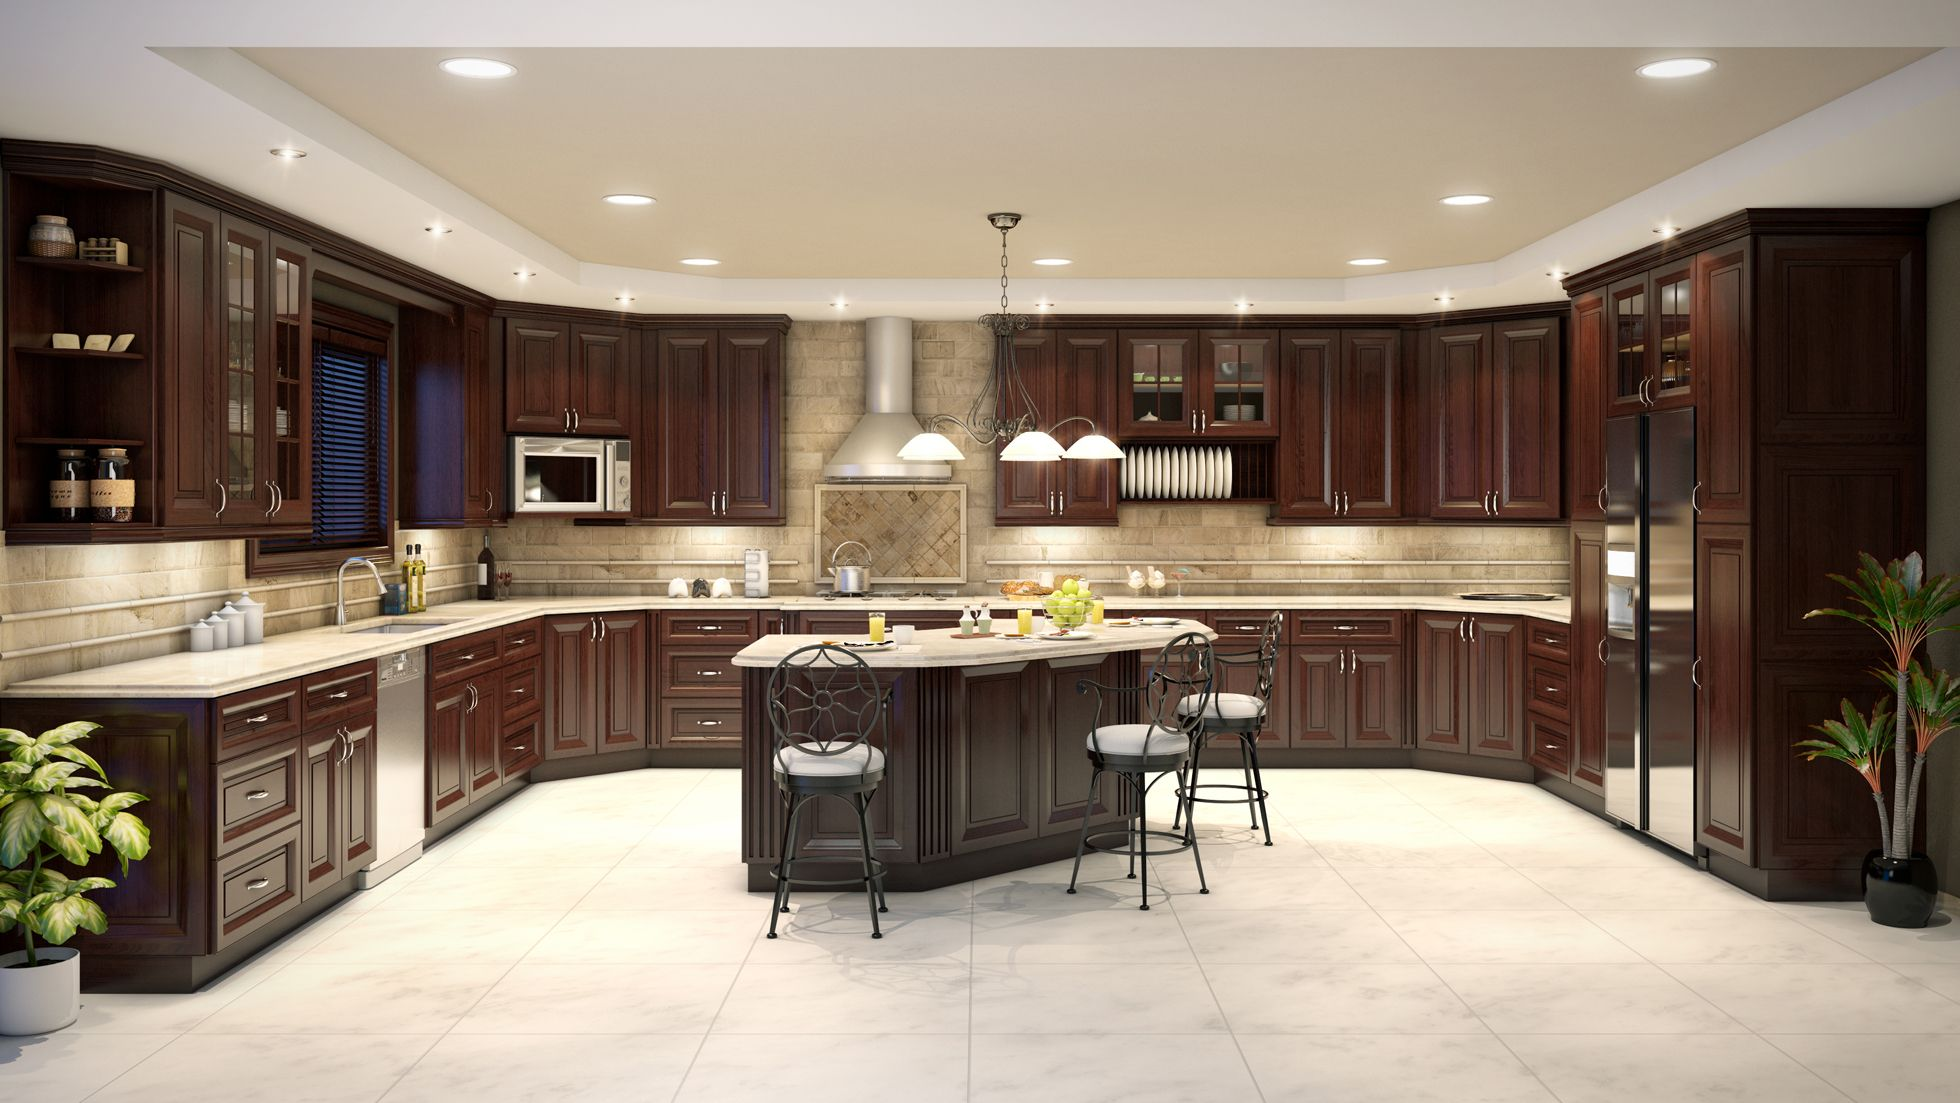 Kitchen Design Baltimore Adornus Cabinetry Boardwalk Kitchen Design Kitchen Cabinets